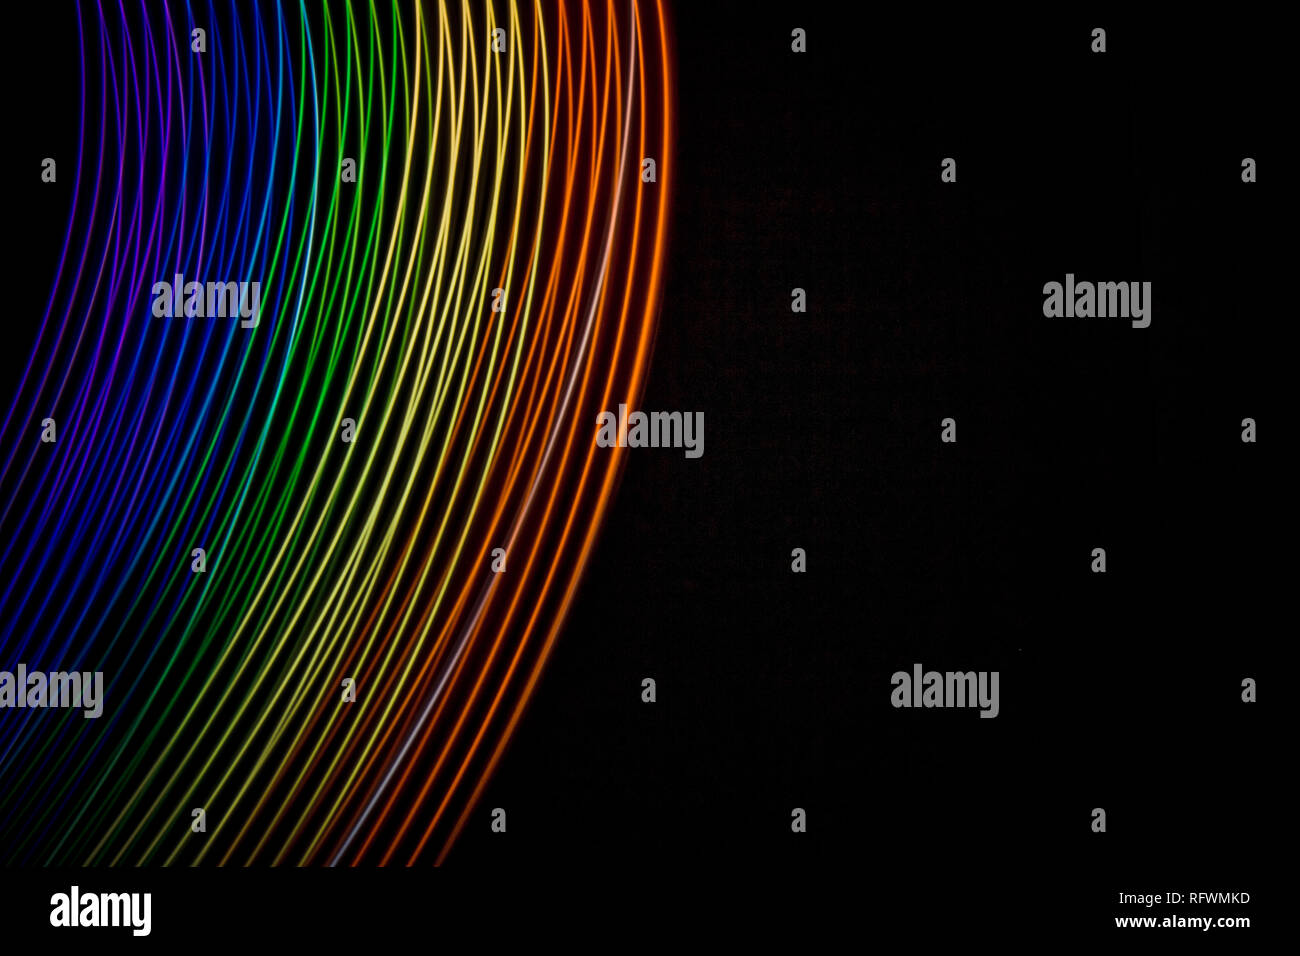 Rainbow of light. Photography made with light painting. Abstract lines with the colors of the rainbow on black background. Resource for designers. - Stock Image